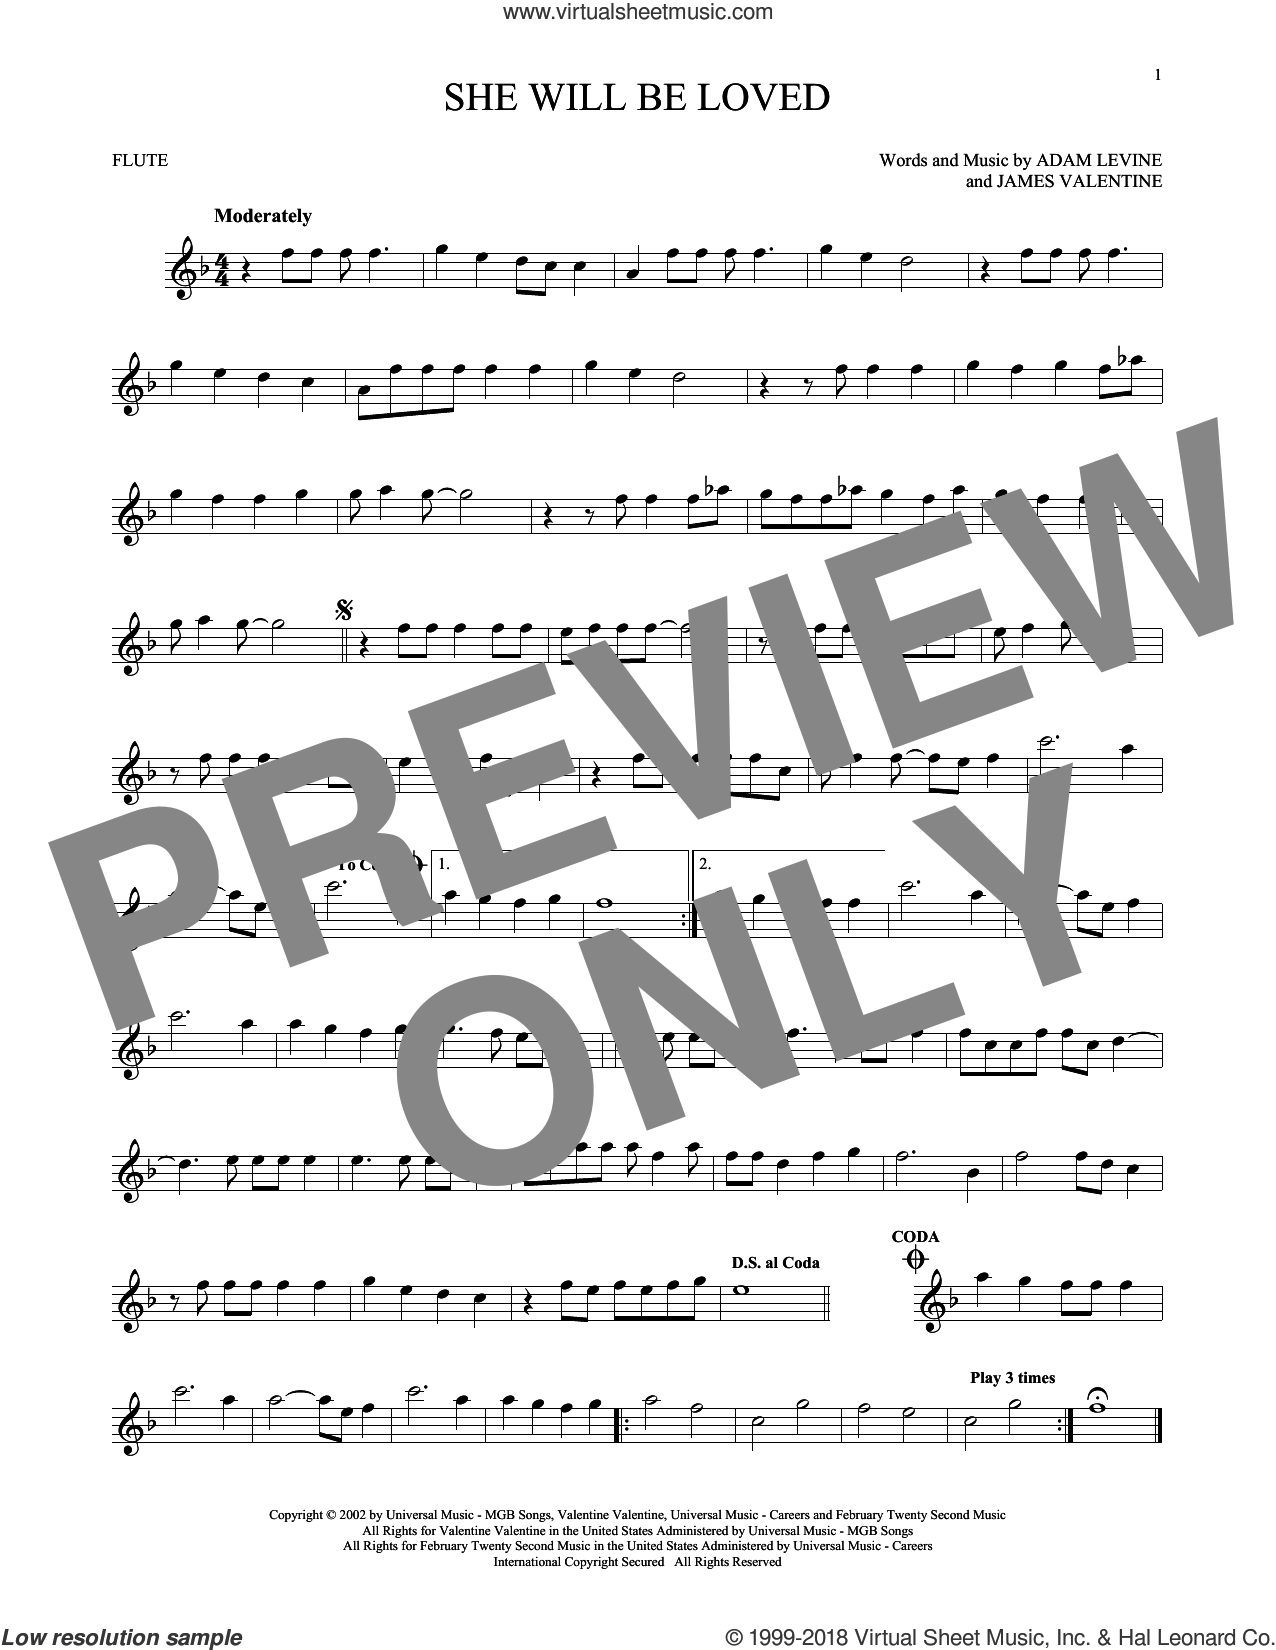 She Will Be Loved sheet music for flute solo by Maroon 5, Adam Levine and James Valentine, intermediate skill level